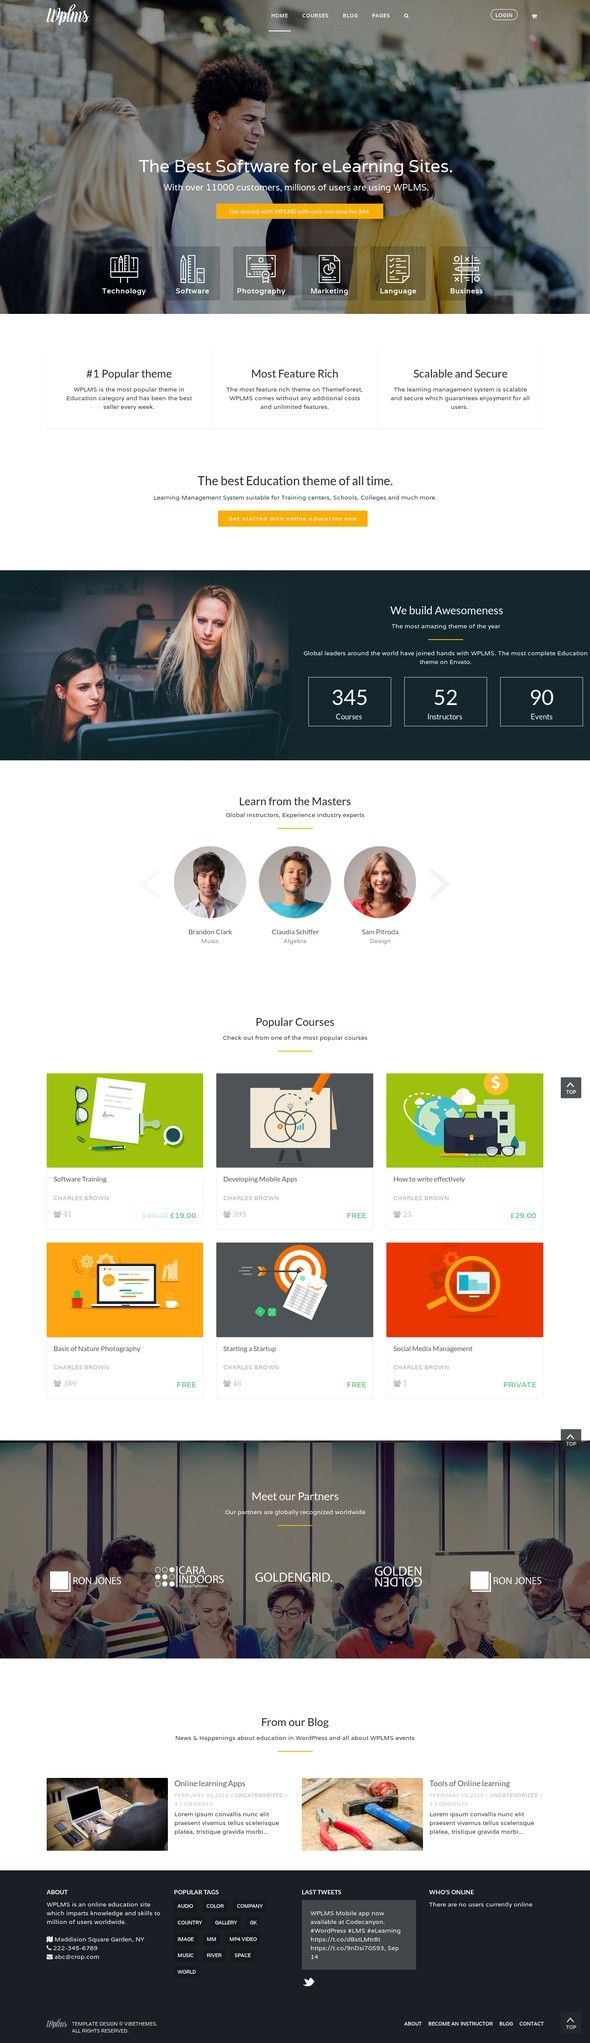 Wplms Learning Management System For Wordpress Education Theme Buddypress Classes Course Management Courses E Learning Education Forums Learning Managem Com Imagens